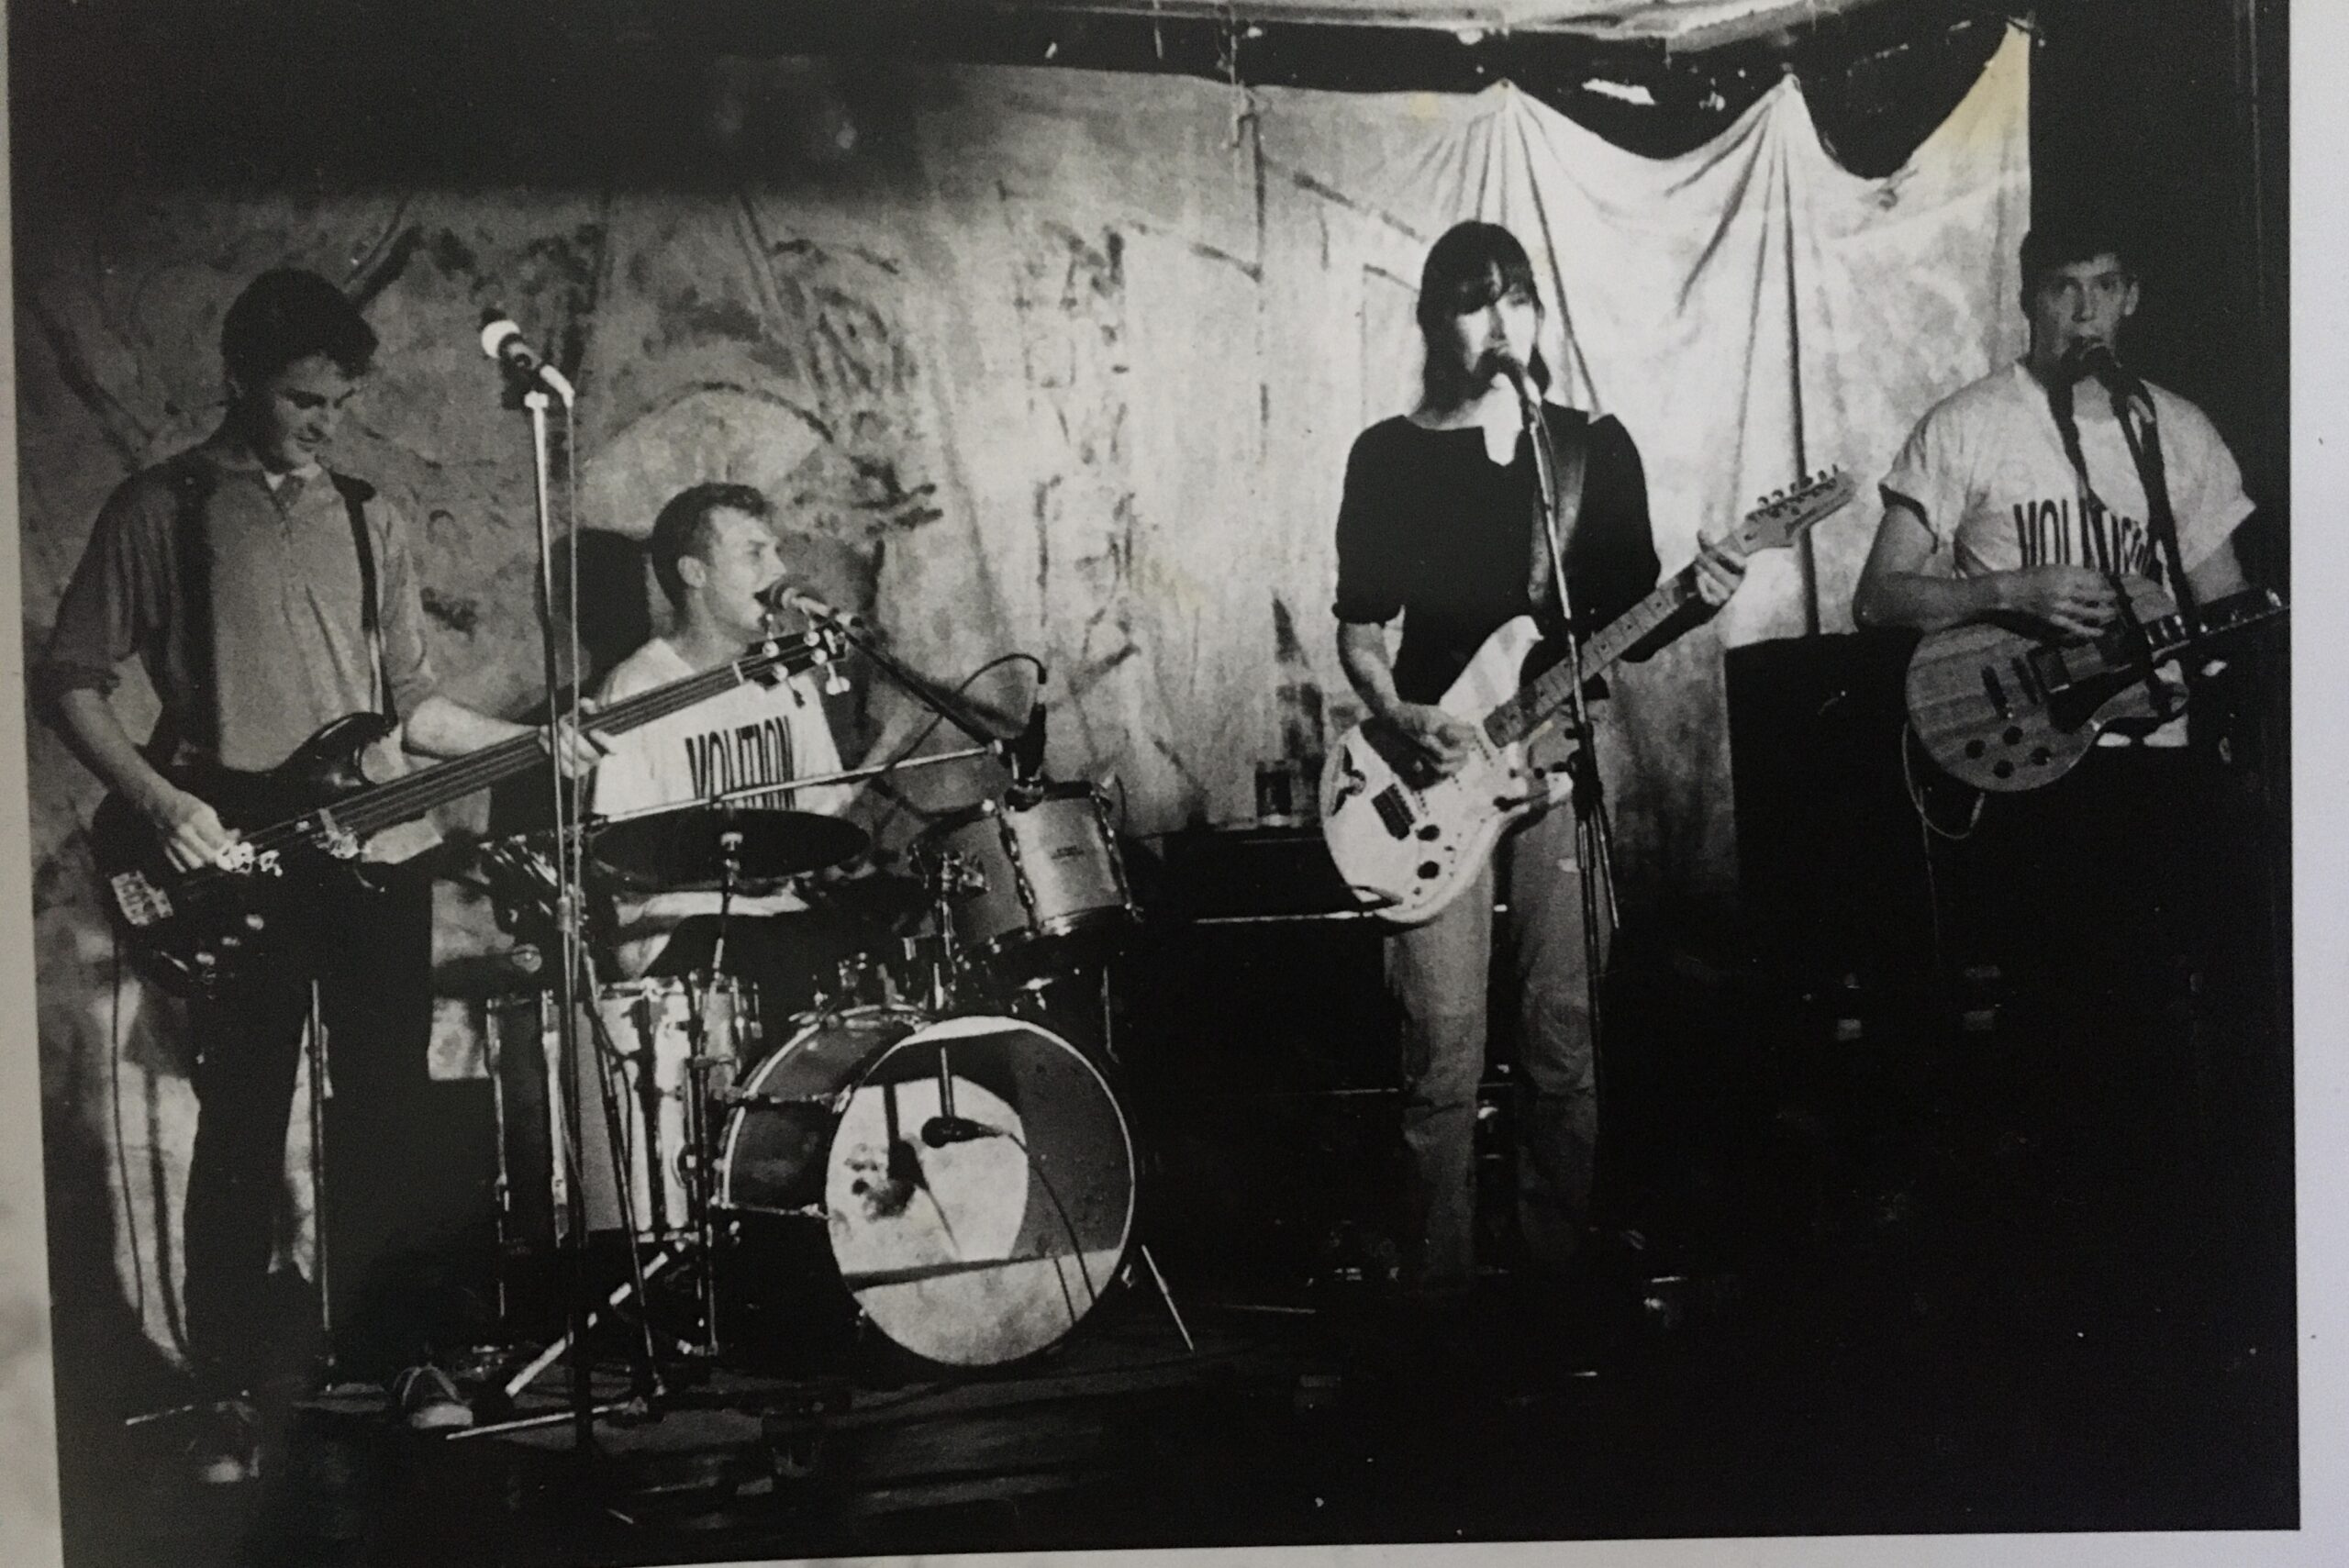 One of our first gigs as a 4 piece